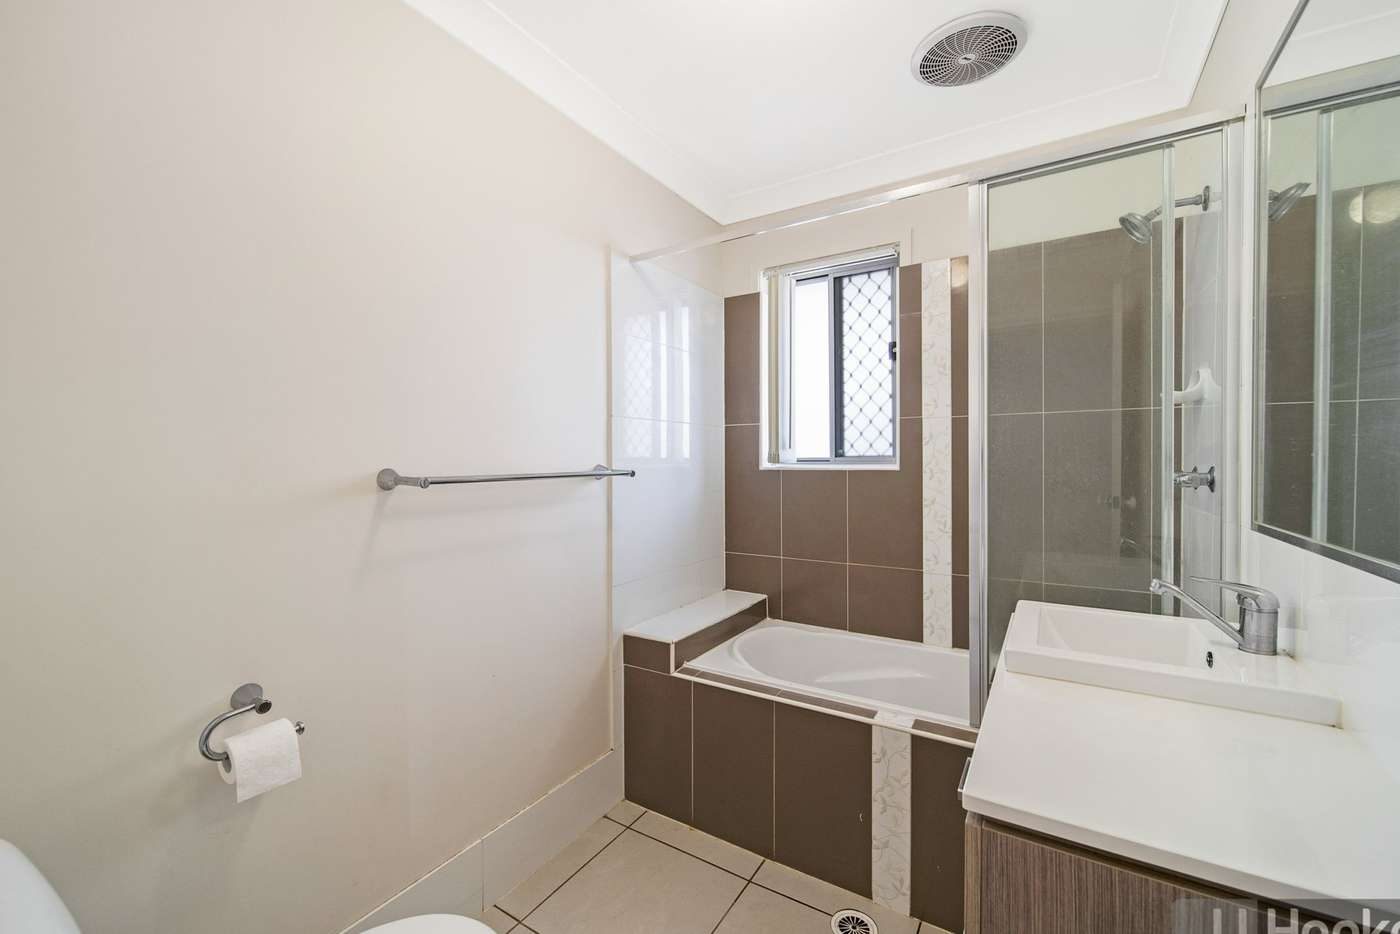 Sixth view of Homely villa listing, Unit 39/6-44 Clearwater Street, Bethania QLD 4205